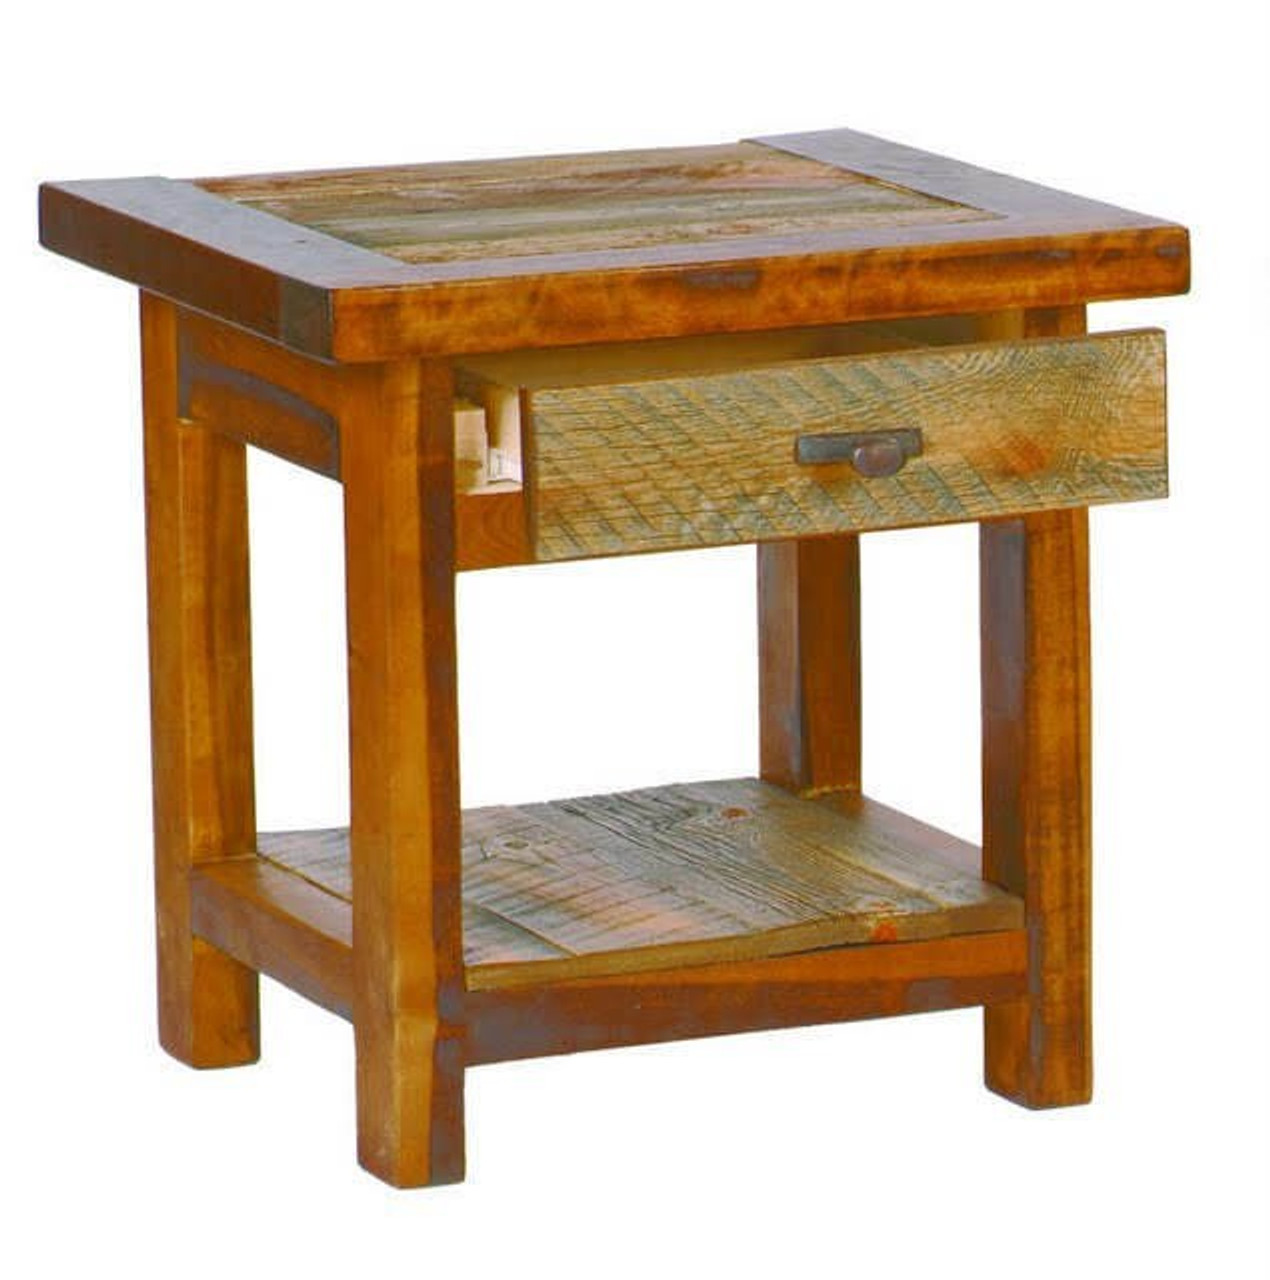 Incredible Rustic Tables Reclaimed Wood End Table With Drawer Barnwood Interior Design Ideas Gentotryabchikinfo